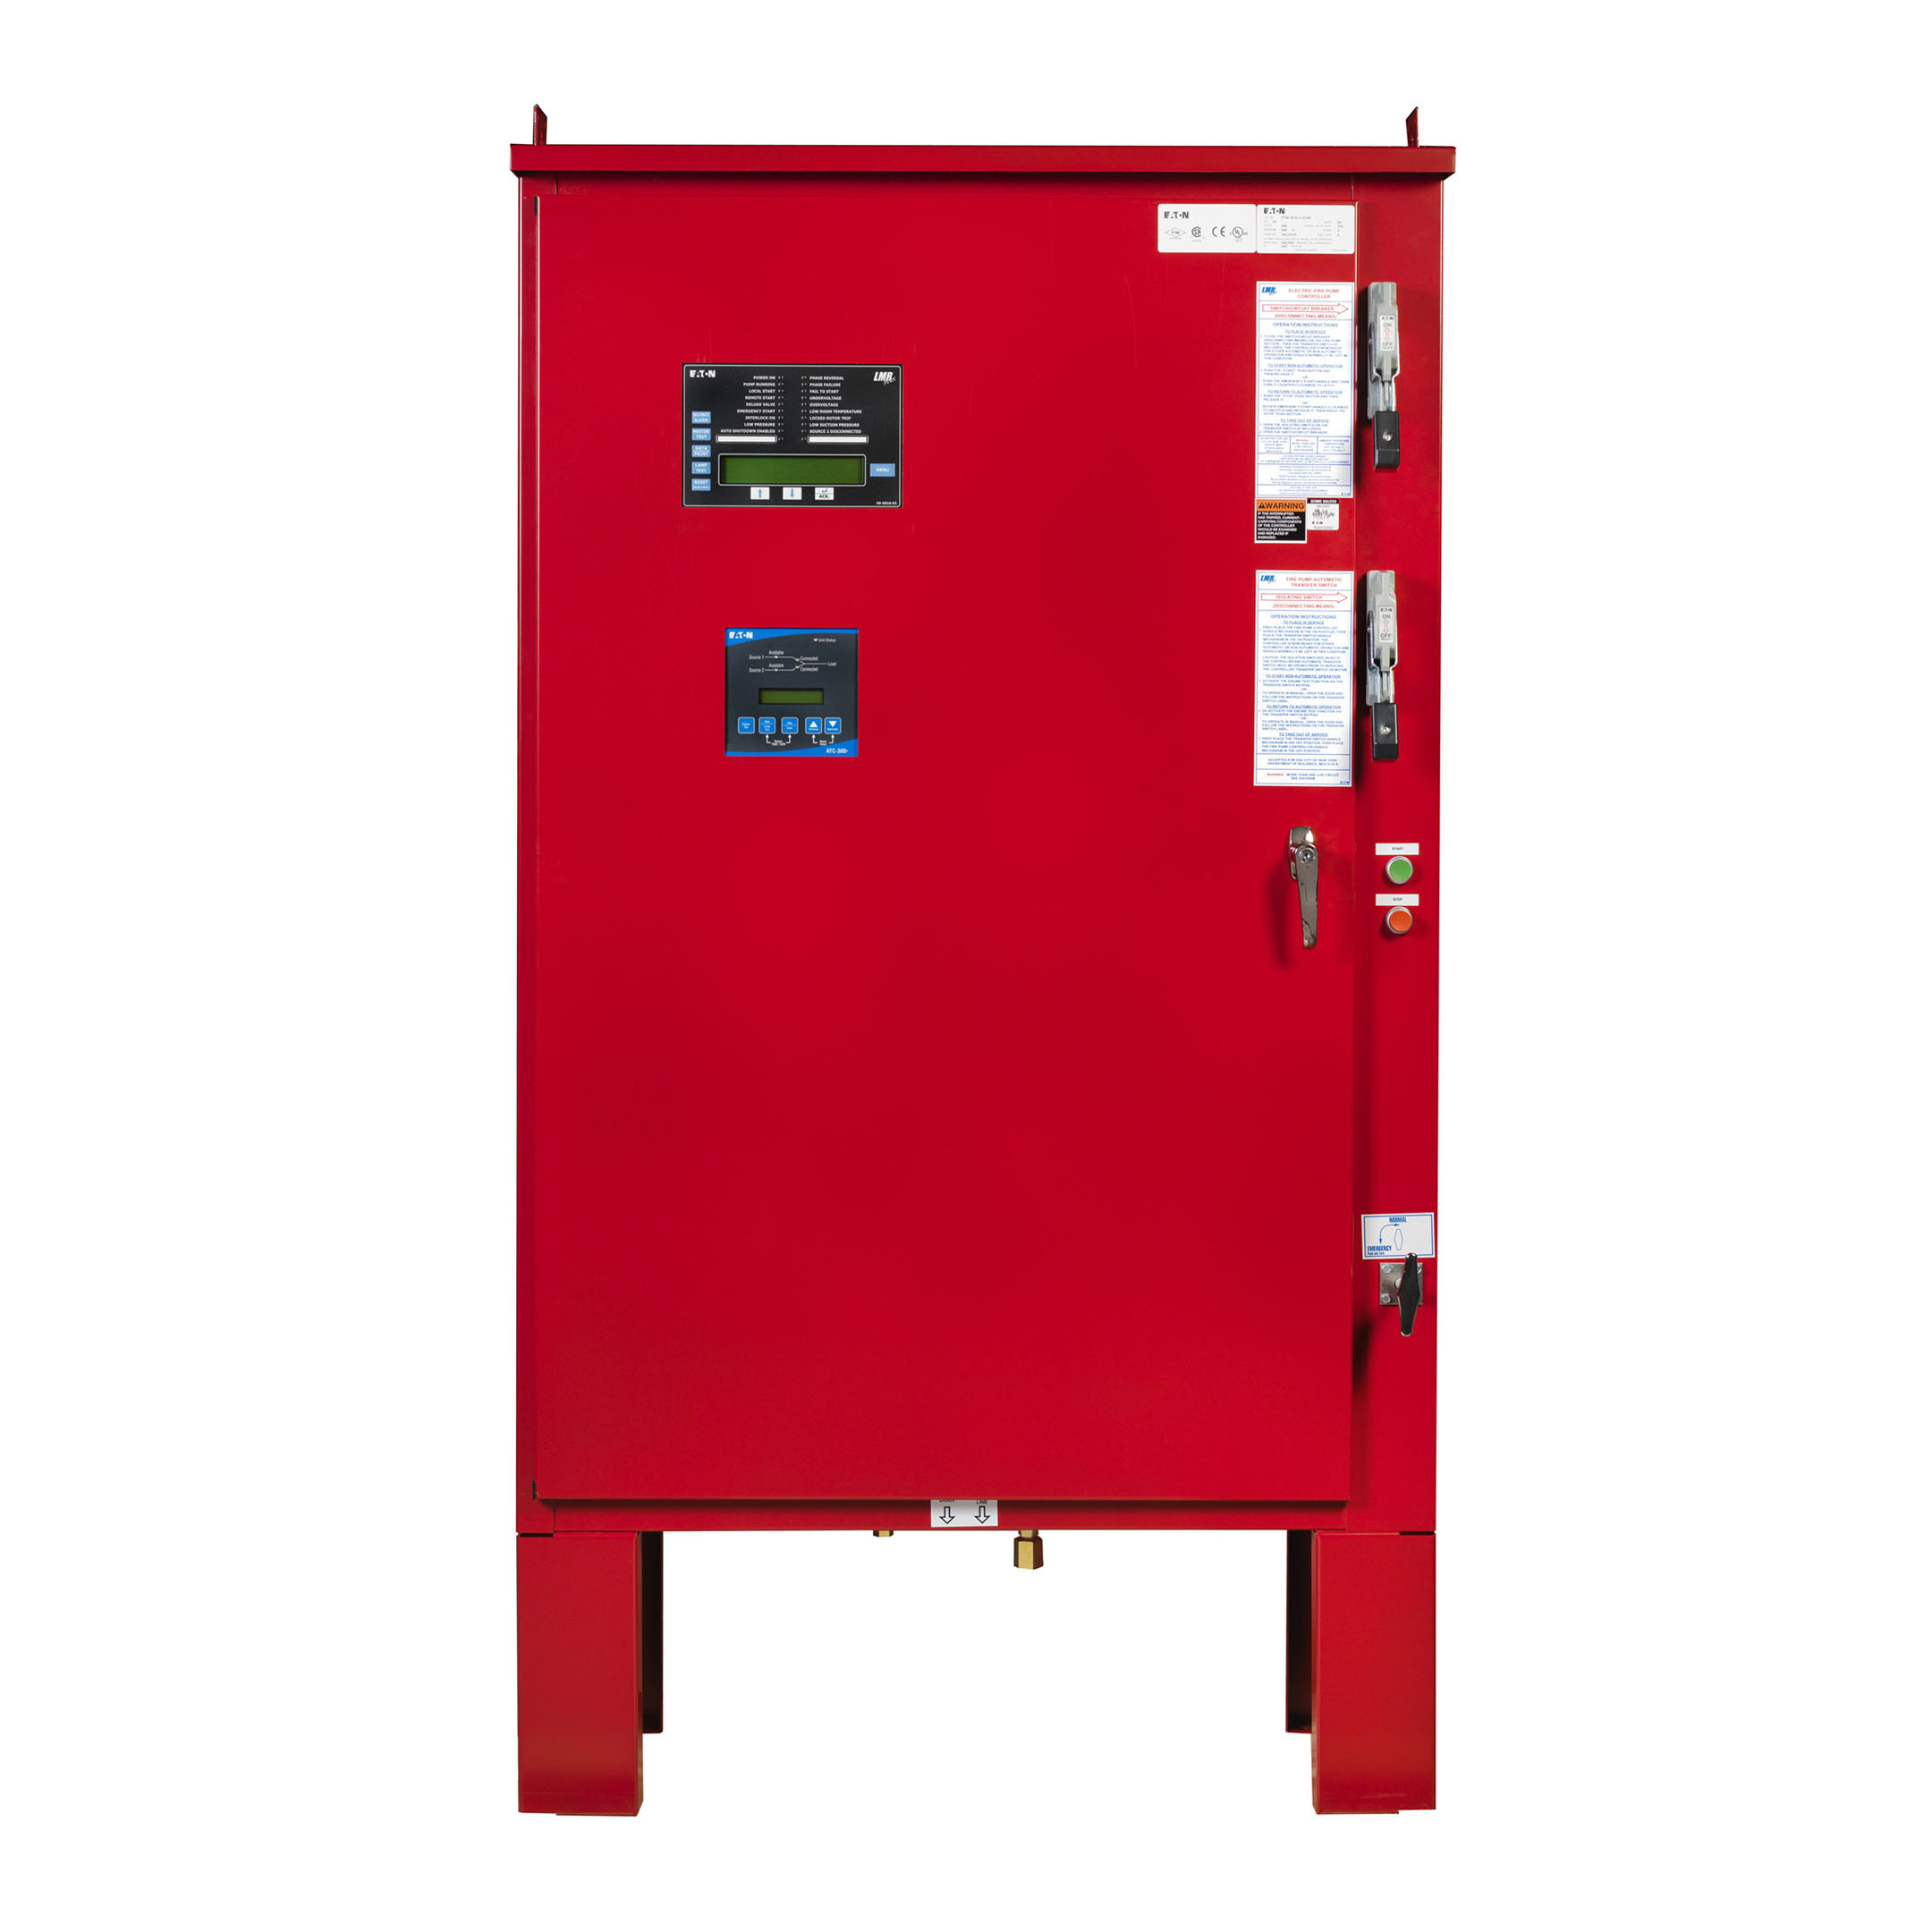 Syncroflo Fire Pumps and Fire Pump Controllers